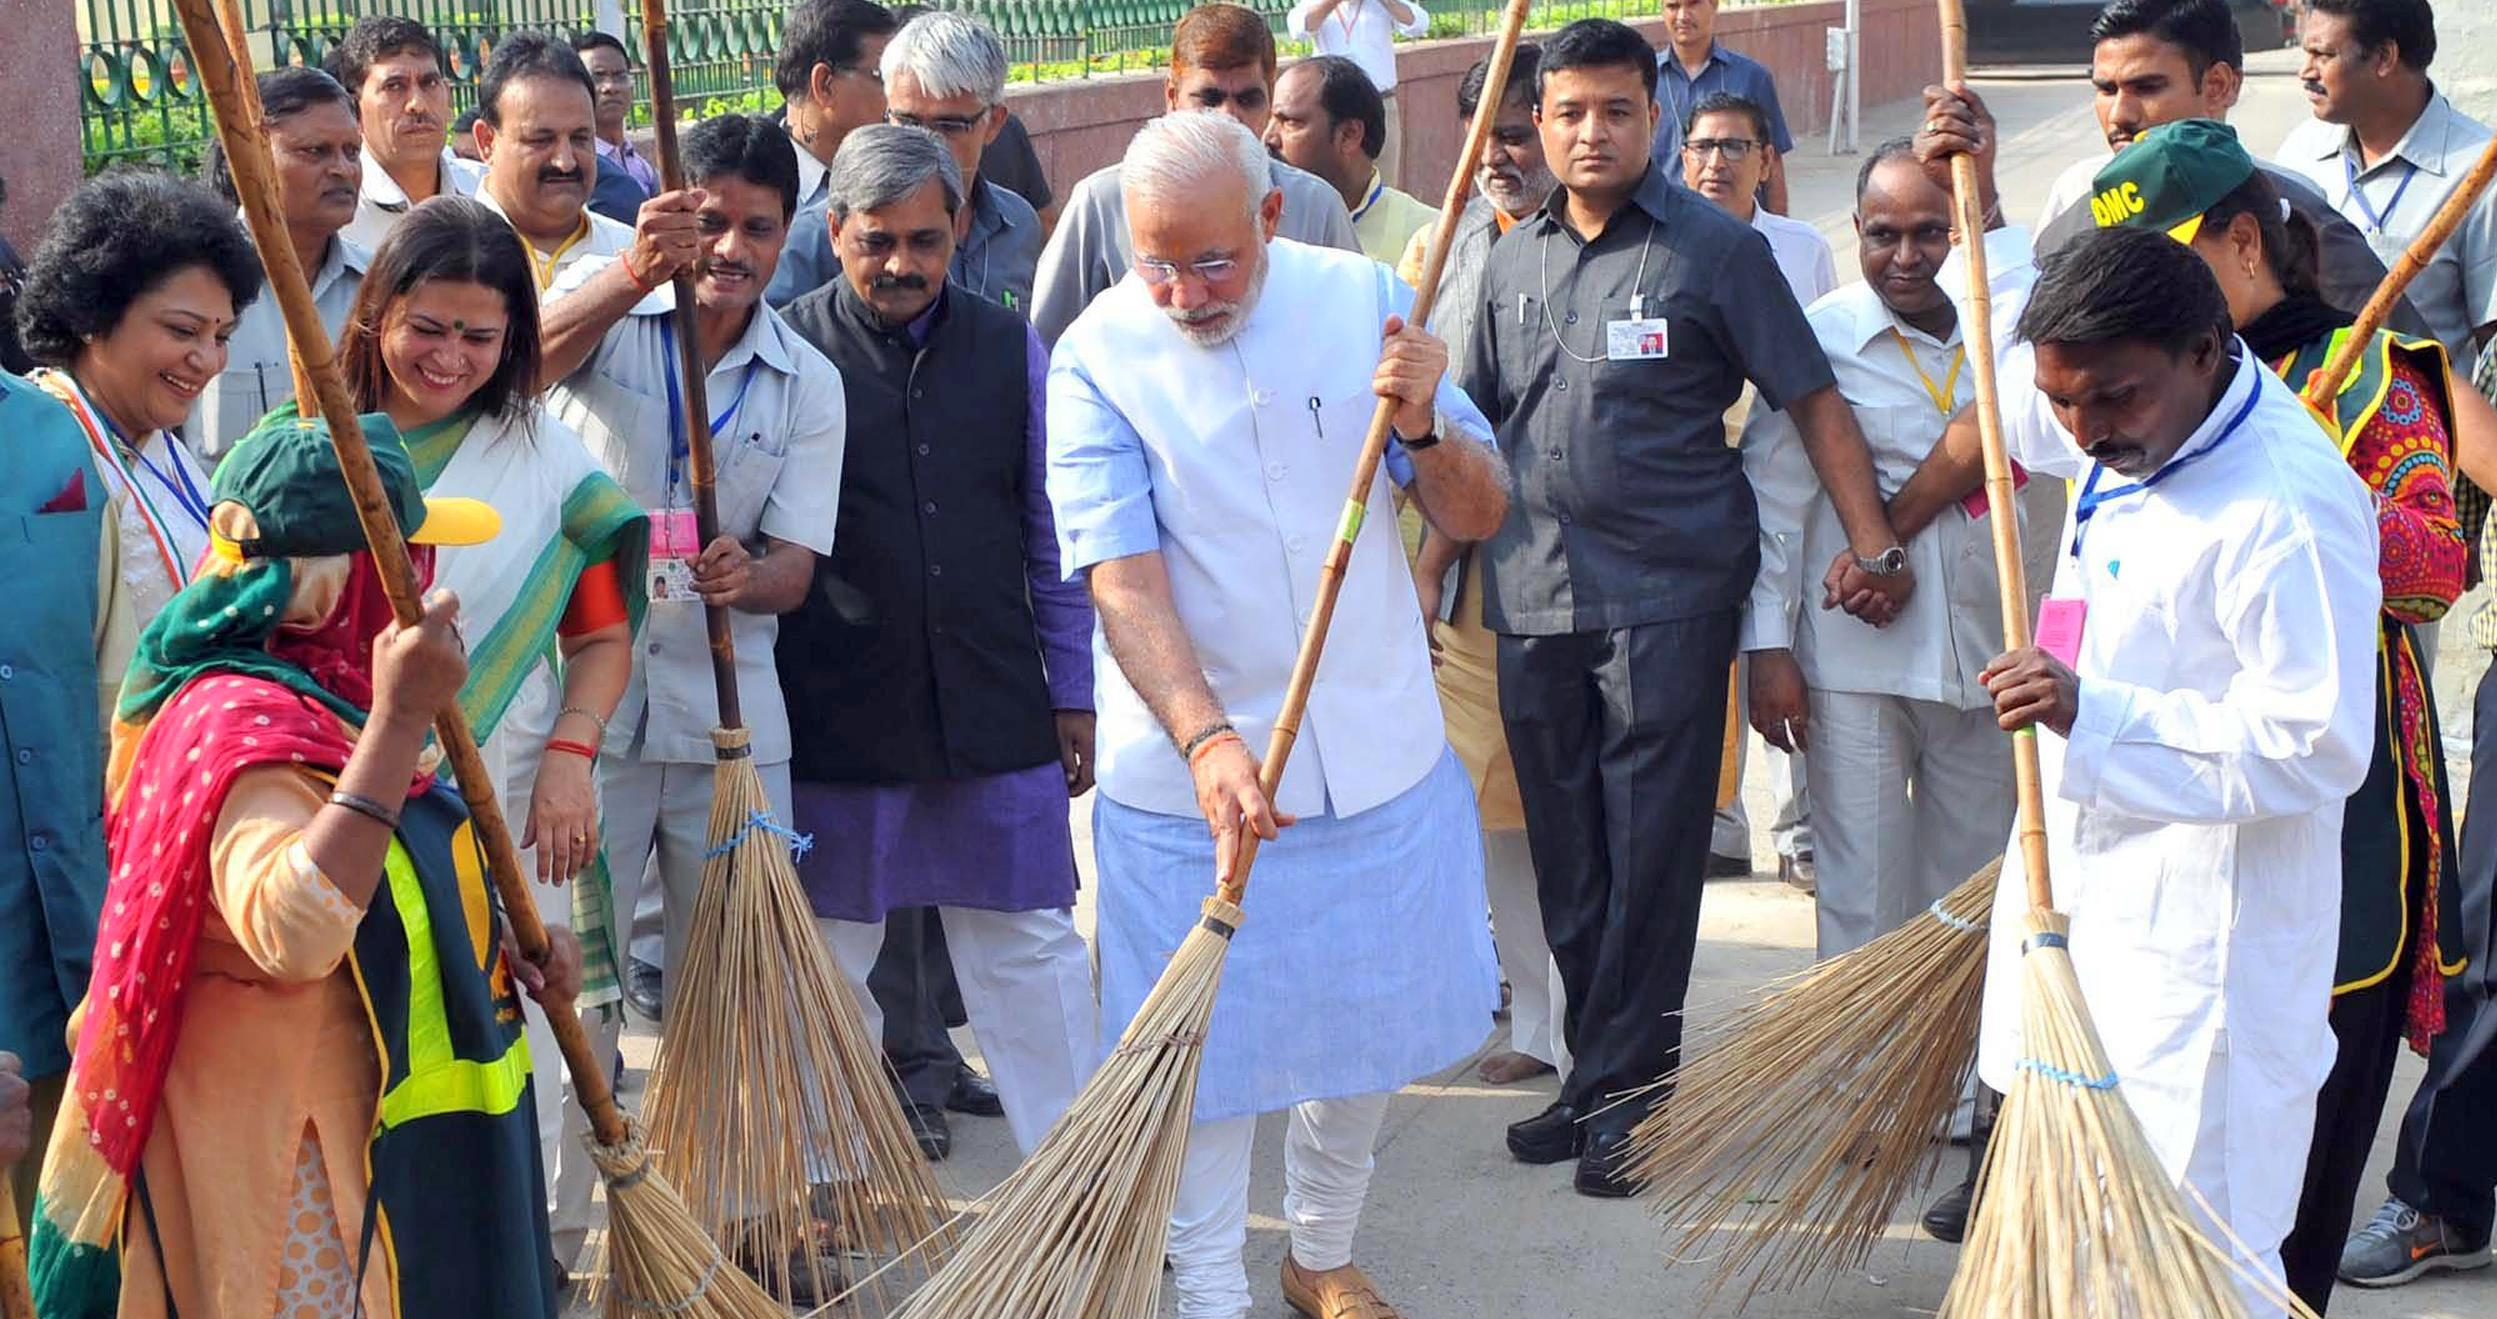 pc-141002-india-clean-up-modi-6a_db1e308a1a4dec9bfc4fdad313580507